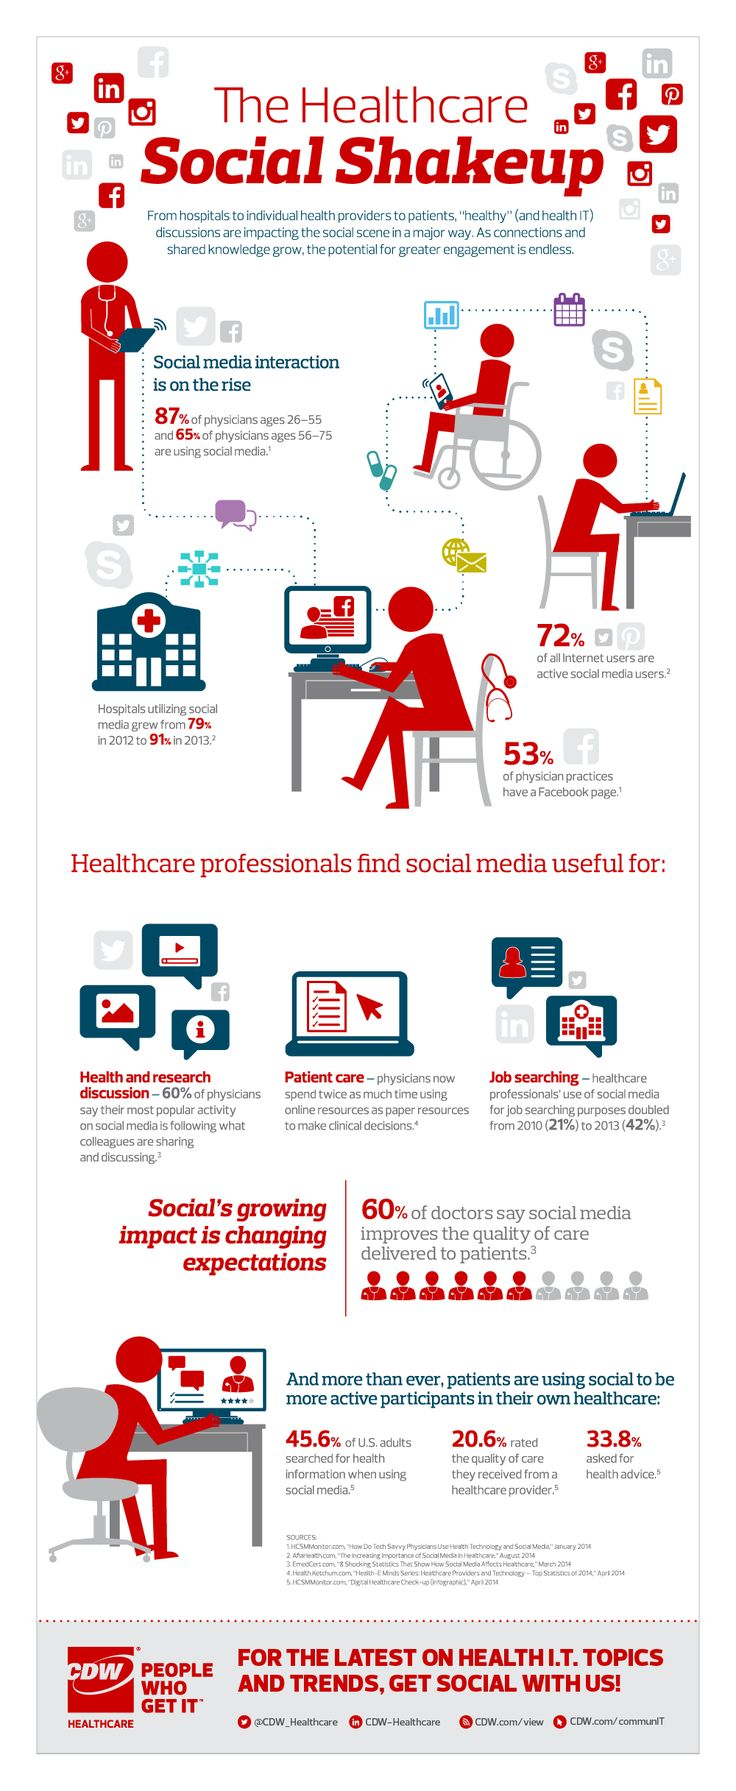 SocialShakeUp in Health Care: 60% of doctors say social media improves the quality of care delivered to patients.